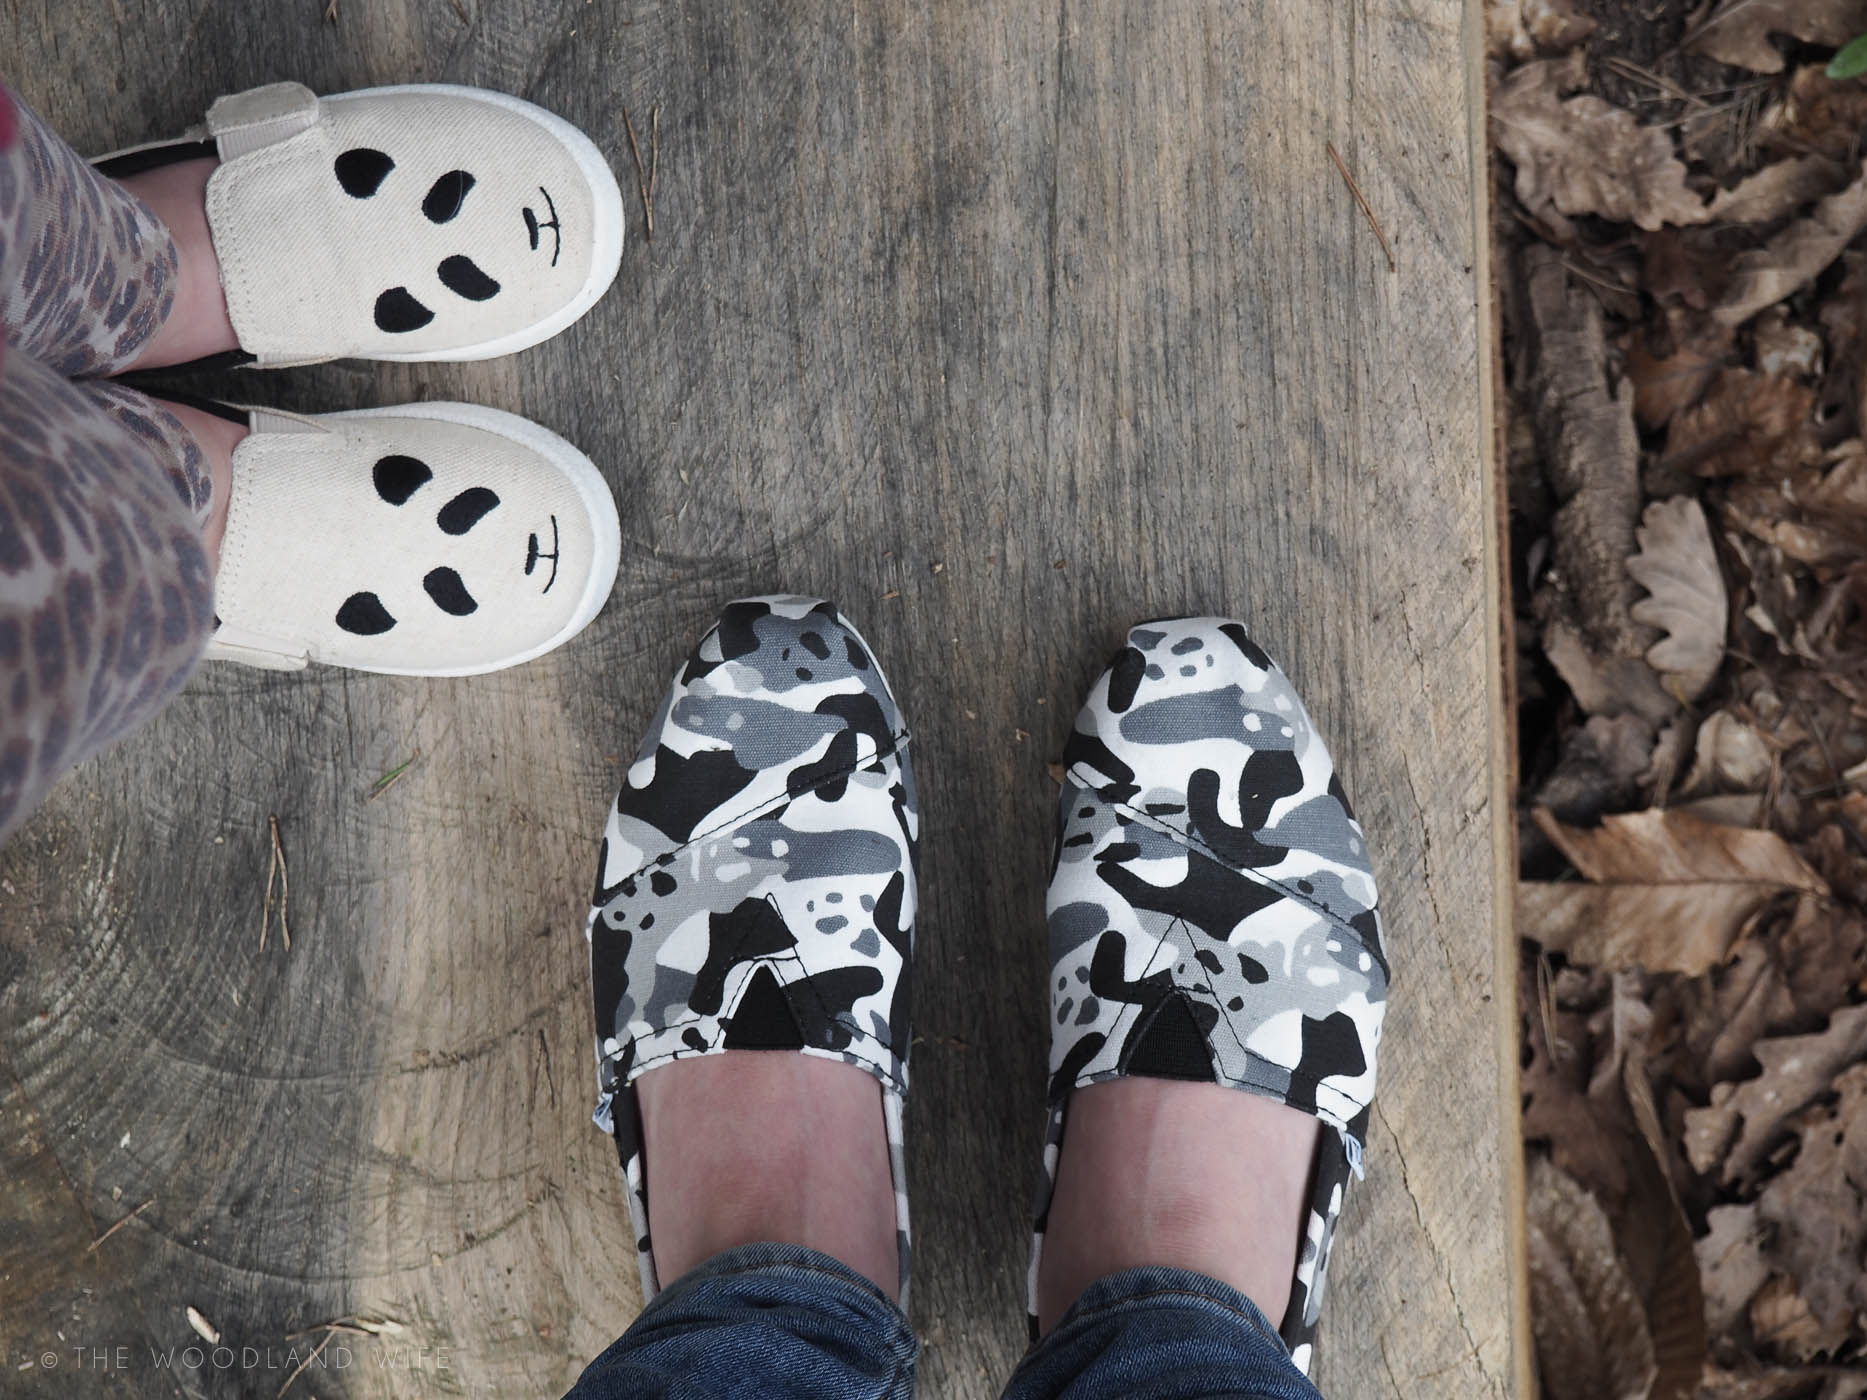 The Woodland Wife - TOMS Panda Collection with WildAid